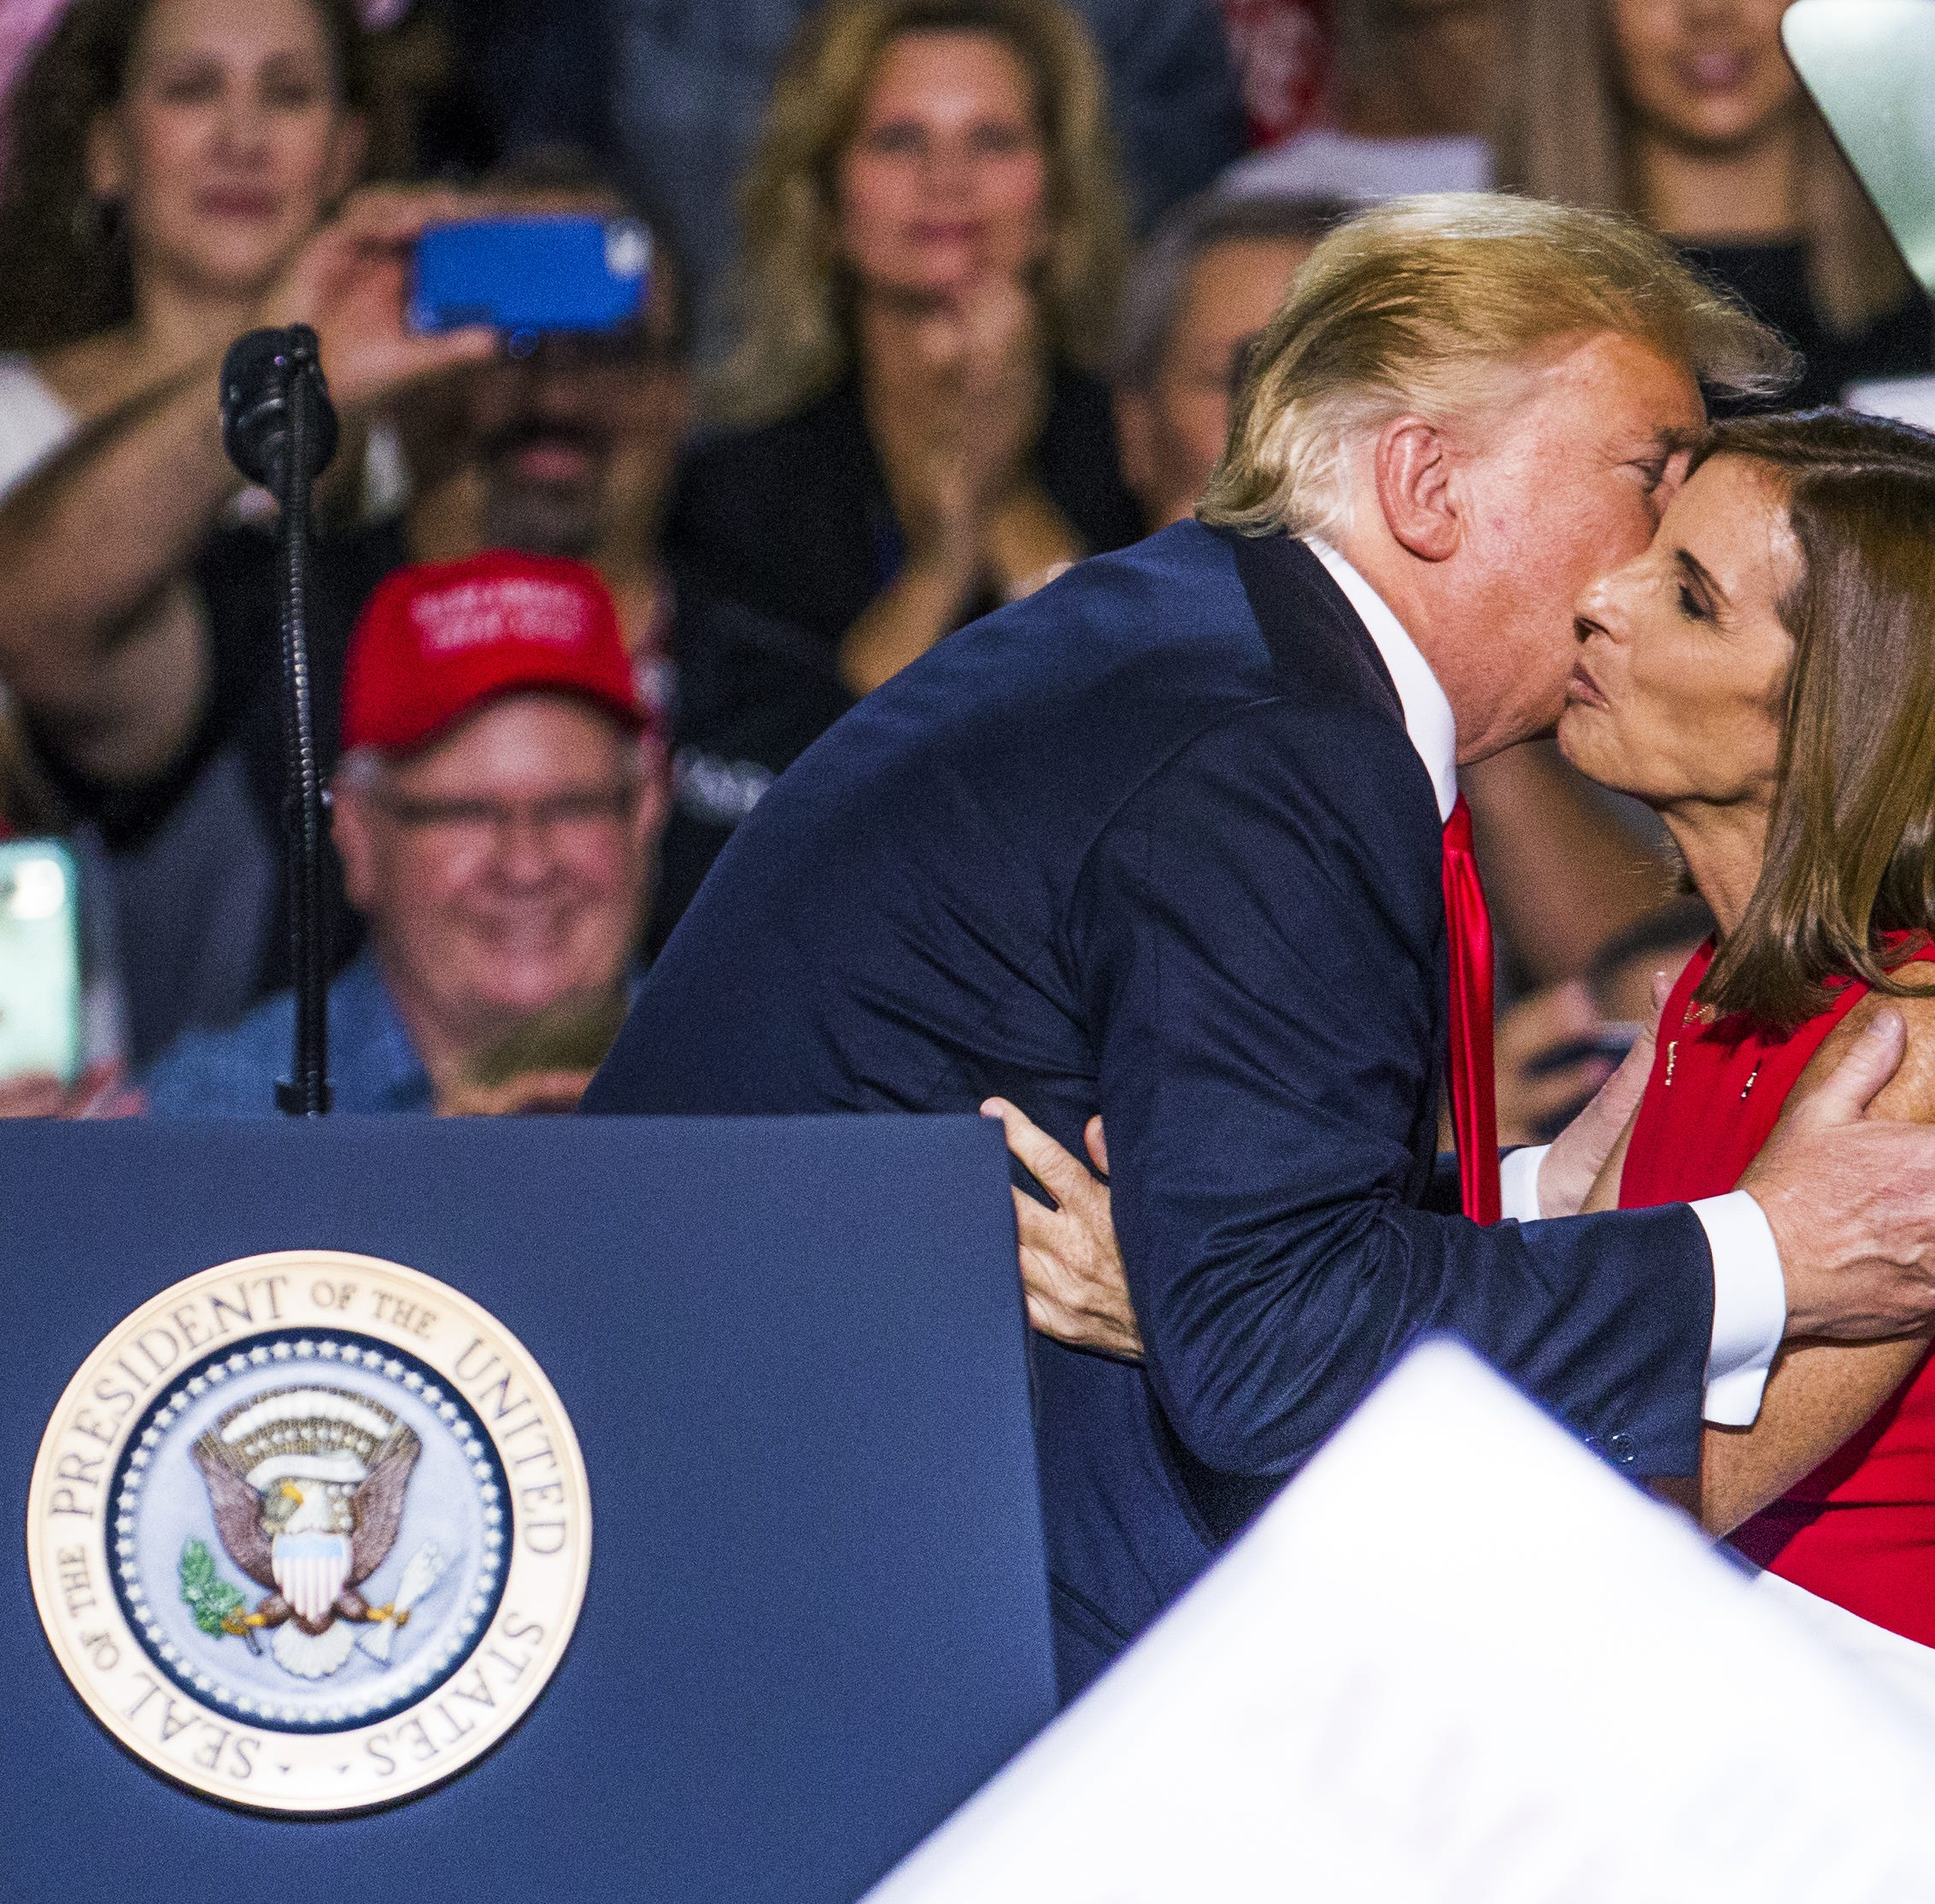 Martha McSally's mistake? Kissing up to Donald Trump